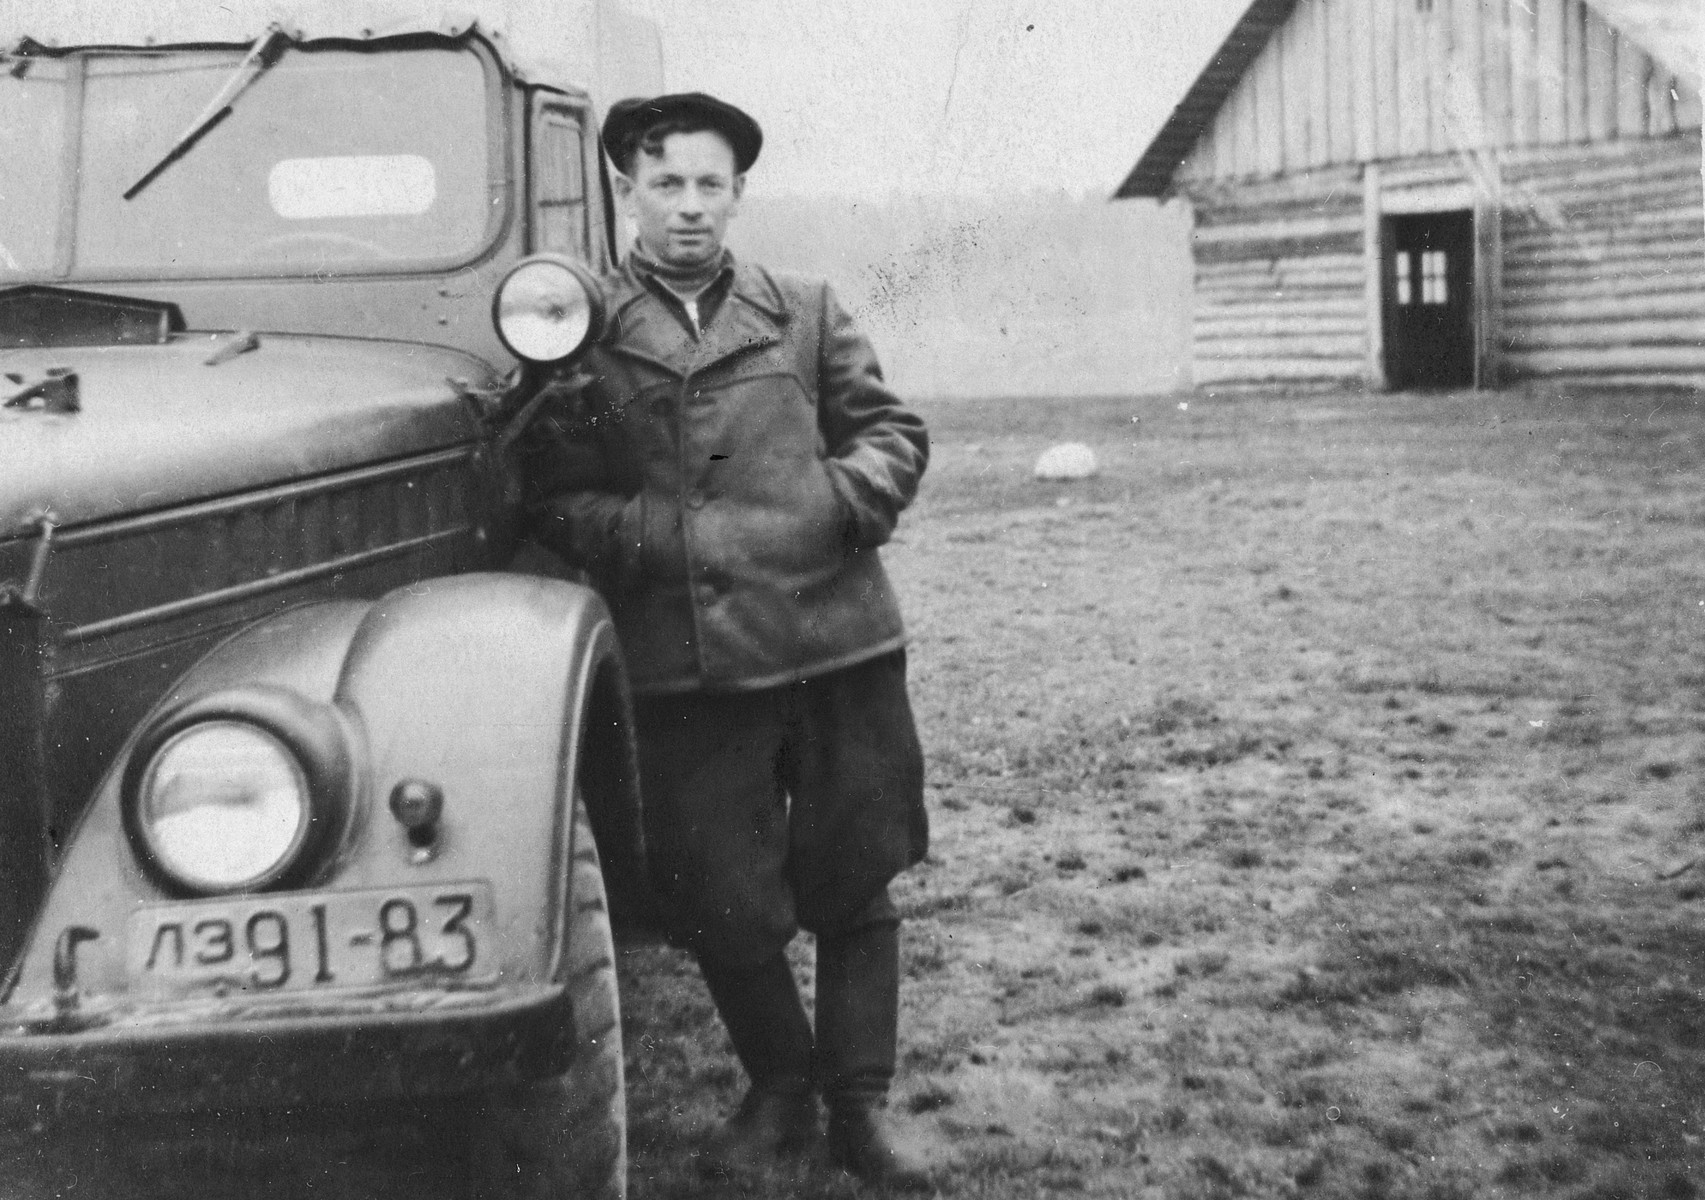 A young Jewish man leans against an automobile with a Russian license plate.  Pictured is Moishe Nodel, the husband of Niusia Gordon.